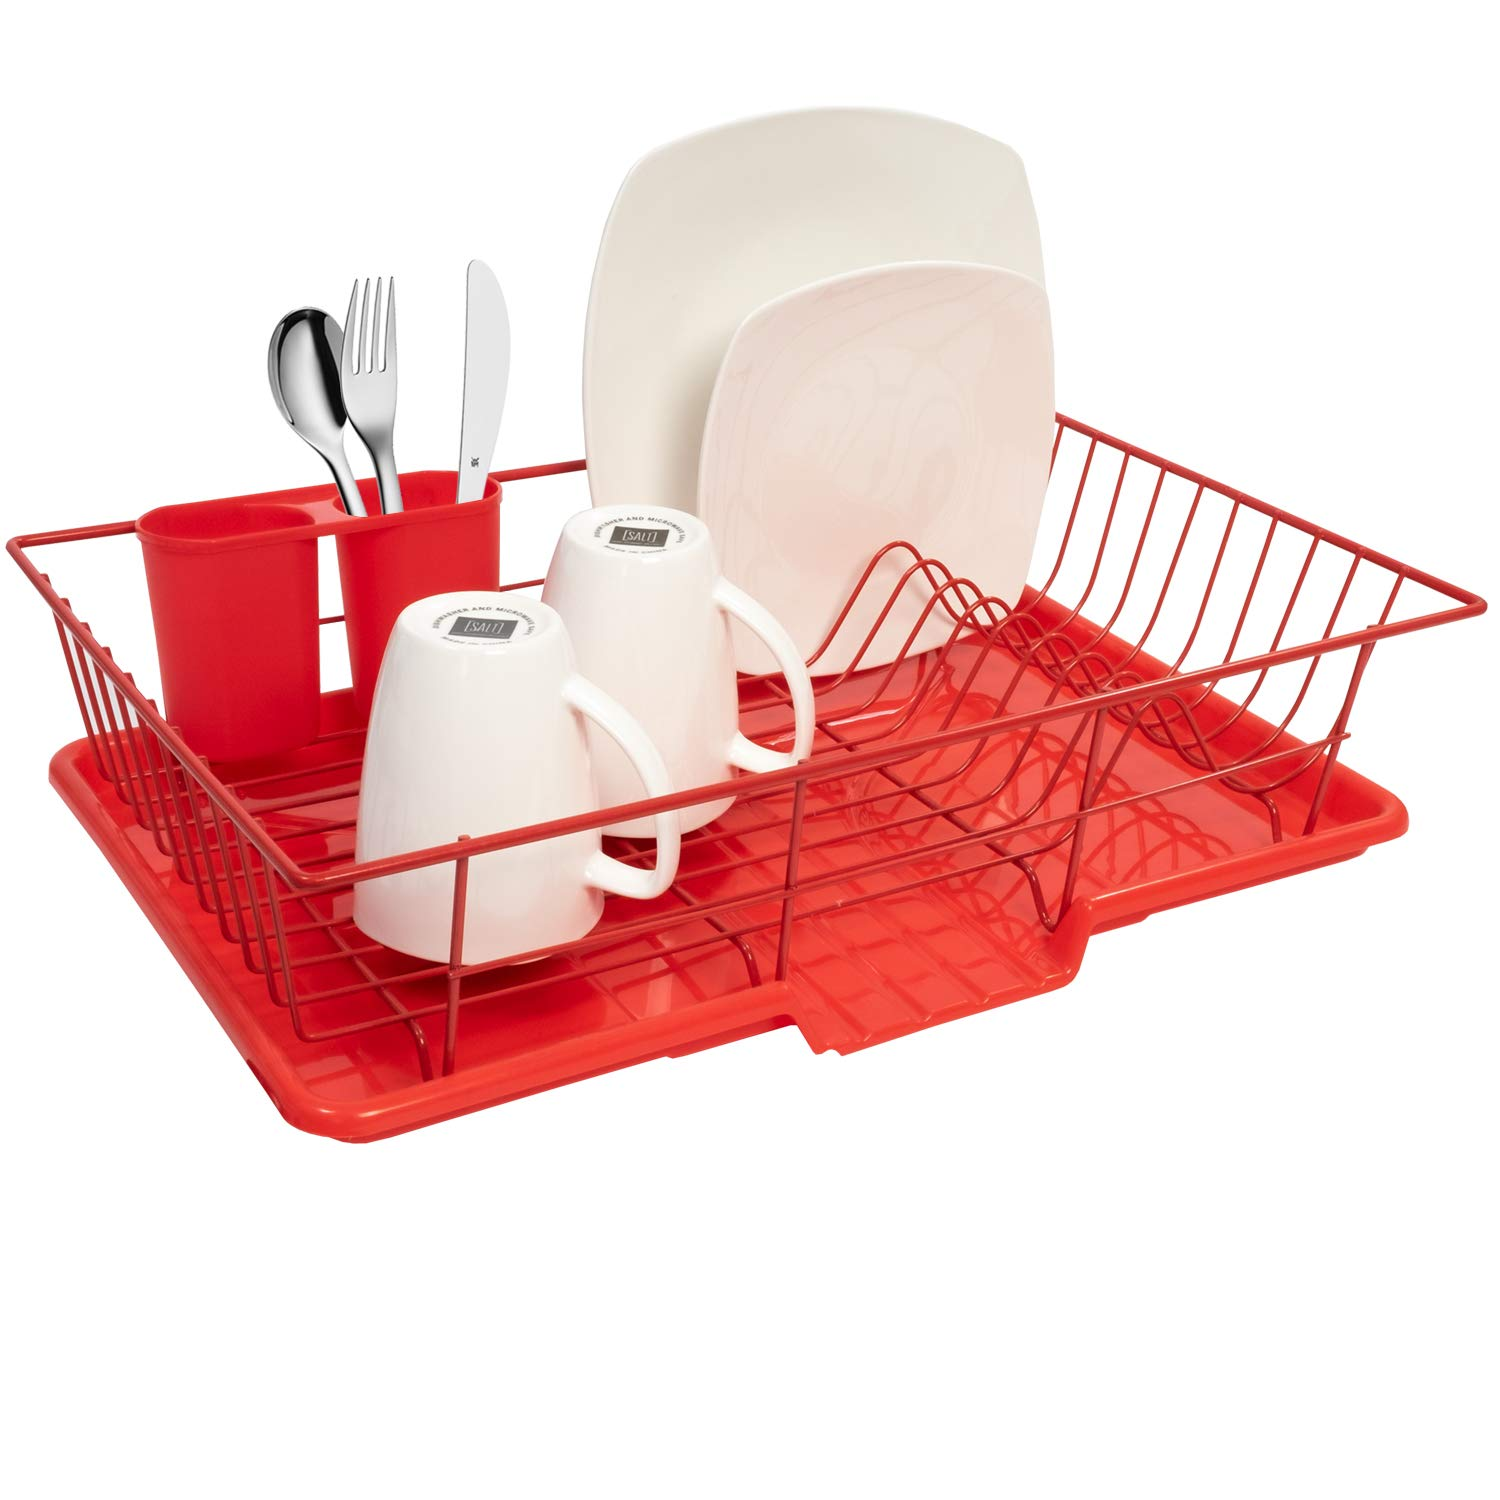 "Sweet Home Collection 3 Piece Dish Drainer Rack Set with with Drying Board and Utensil Holder, 12"" x 19"" x 5"", Red"